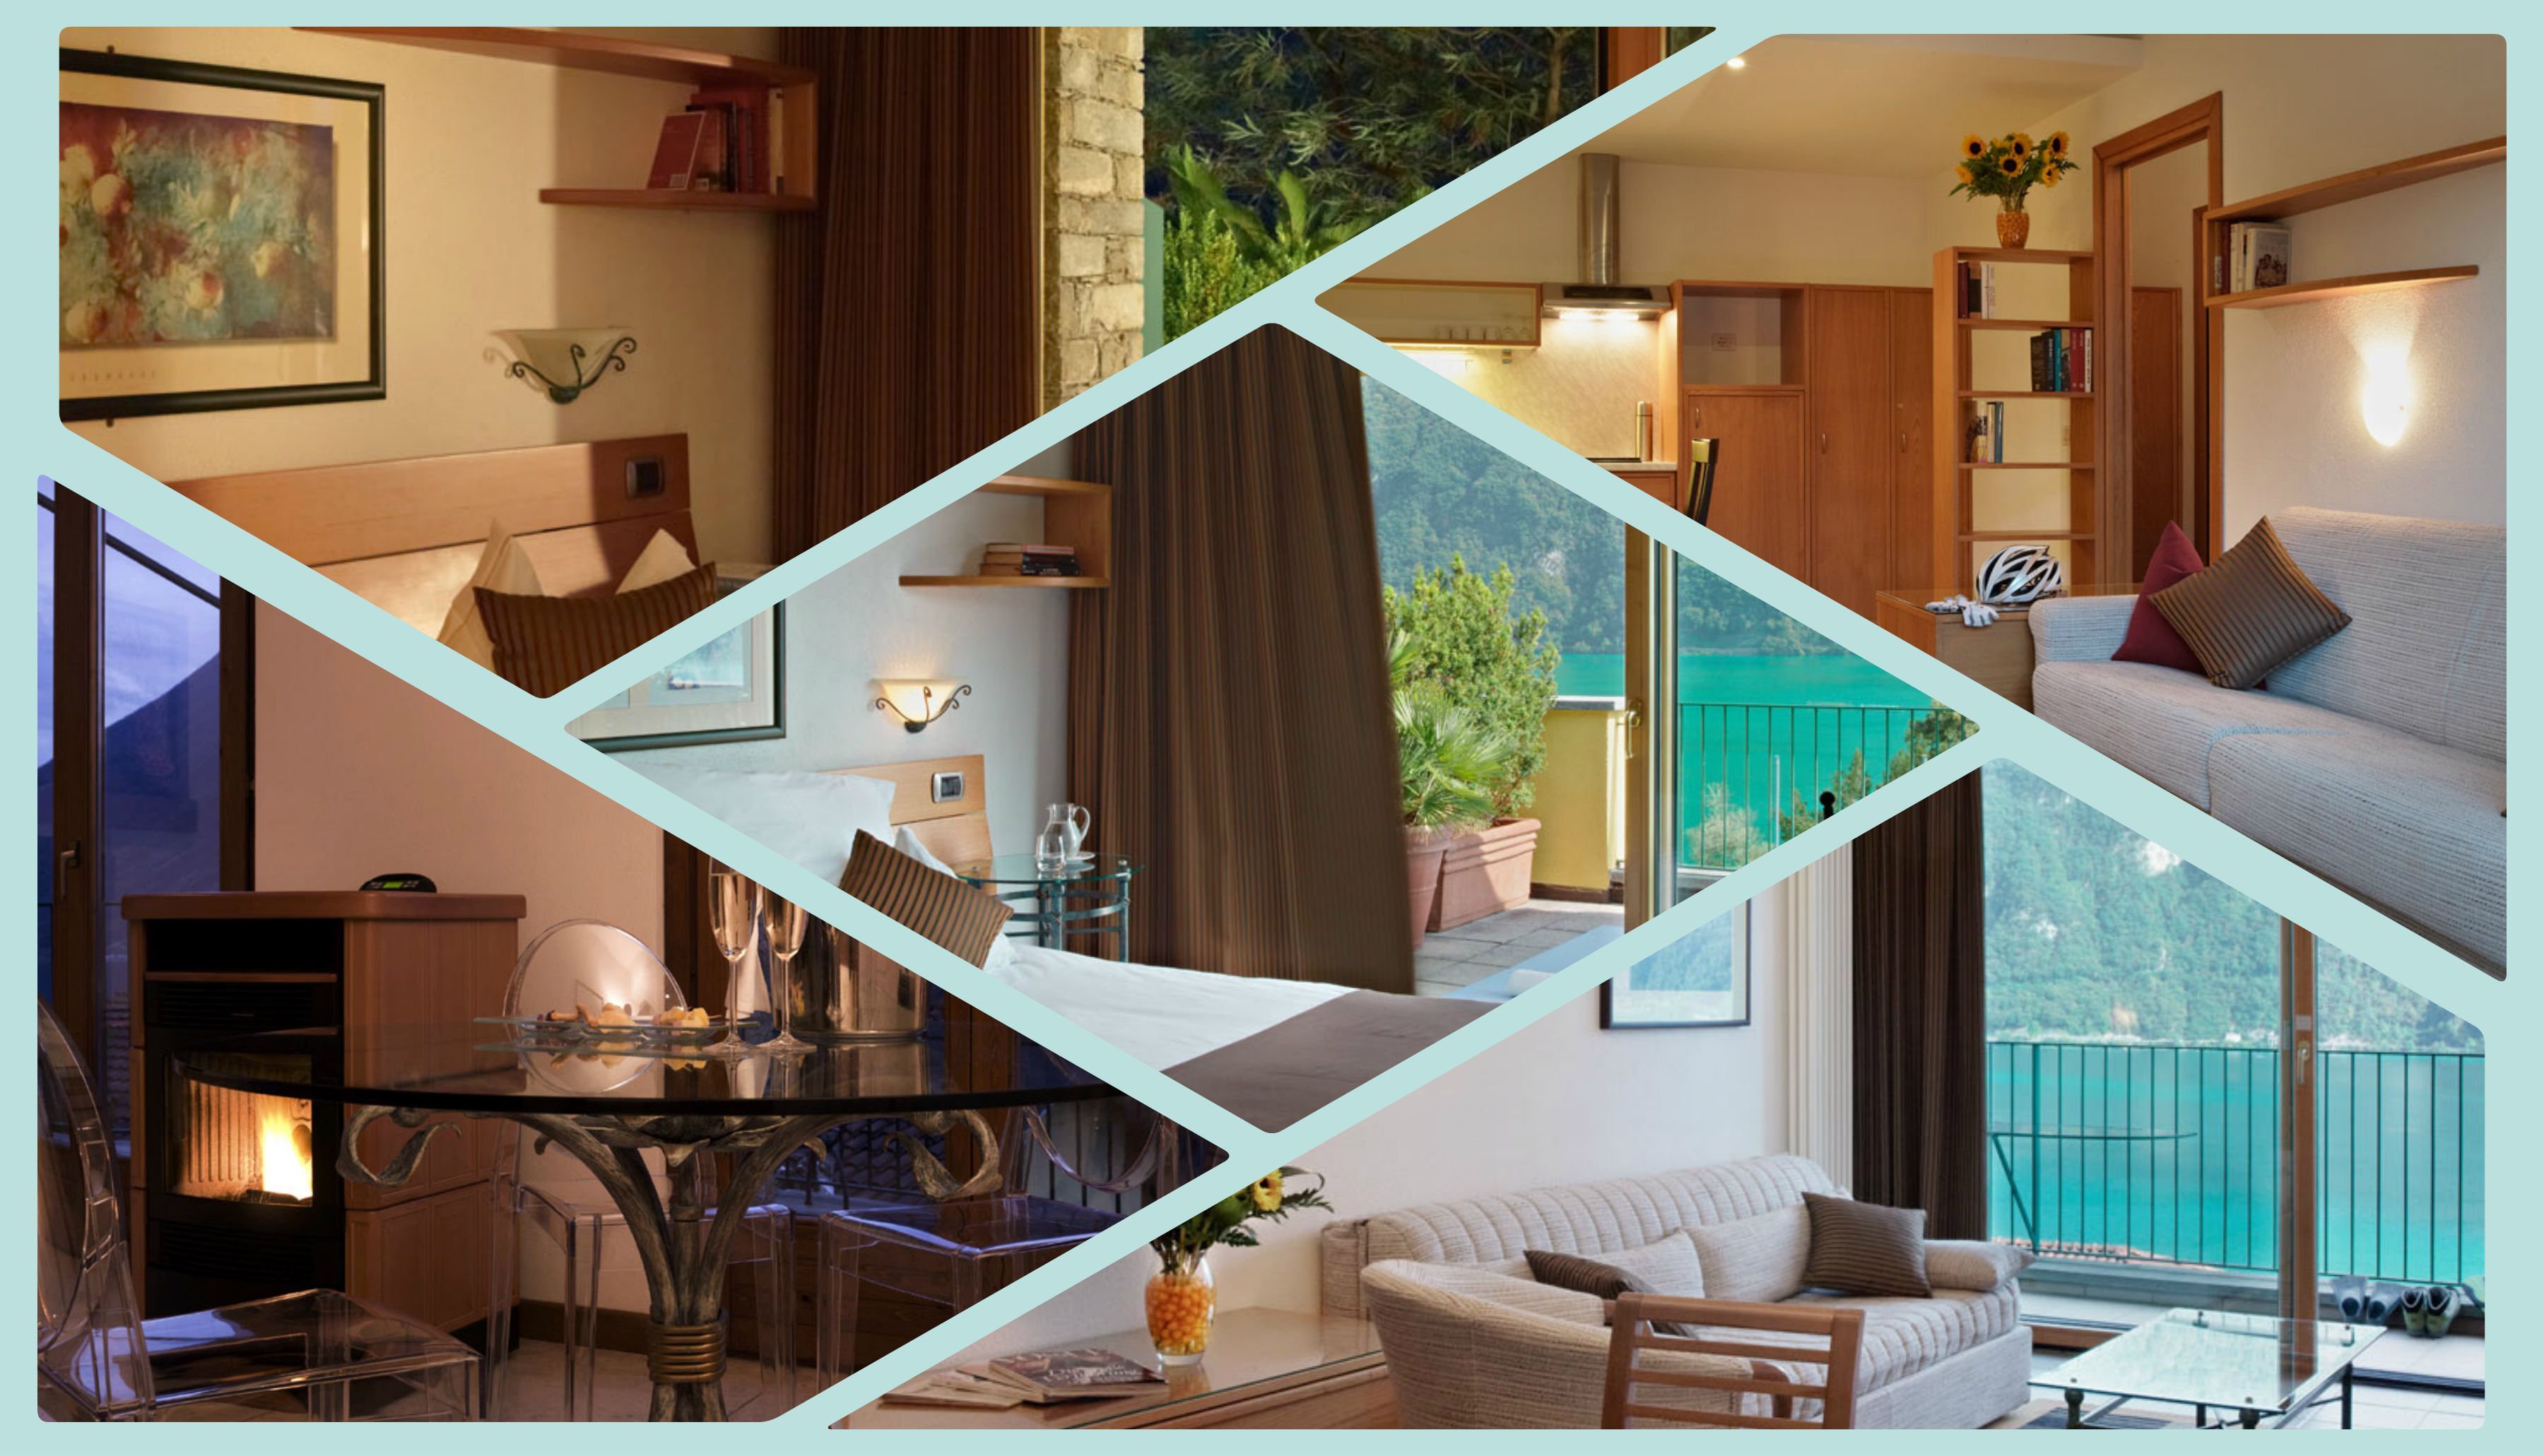 Suites Collage 2  .  .   http://www.parco-san-marco.com/en/rooms-suites/   .   .   #italy  #travel #hotel #lake #lugano #como #beach #holidays #vacation #family #golf #kids #leisure #parco #marco #lifestyle